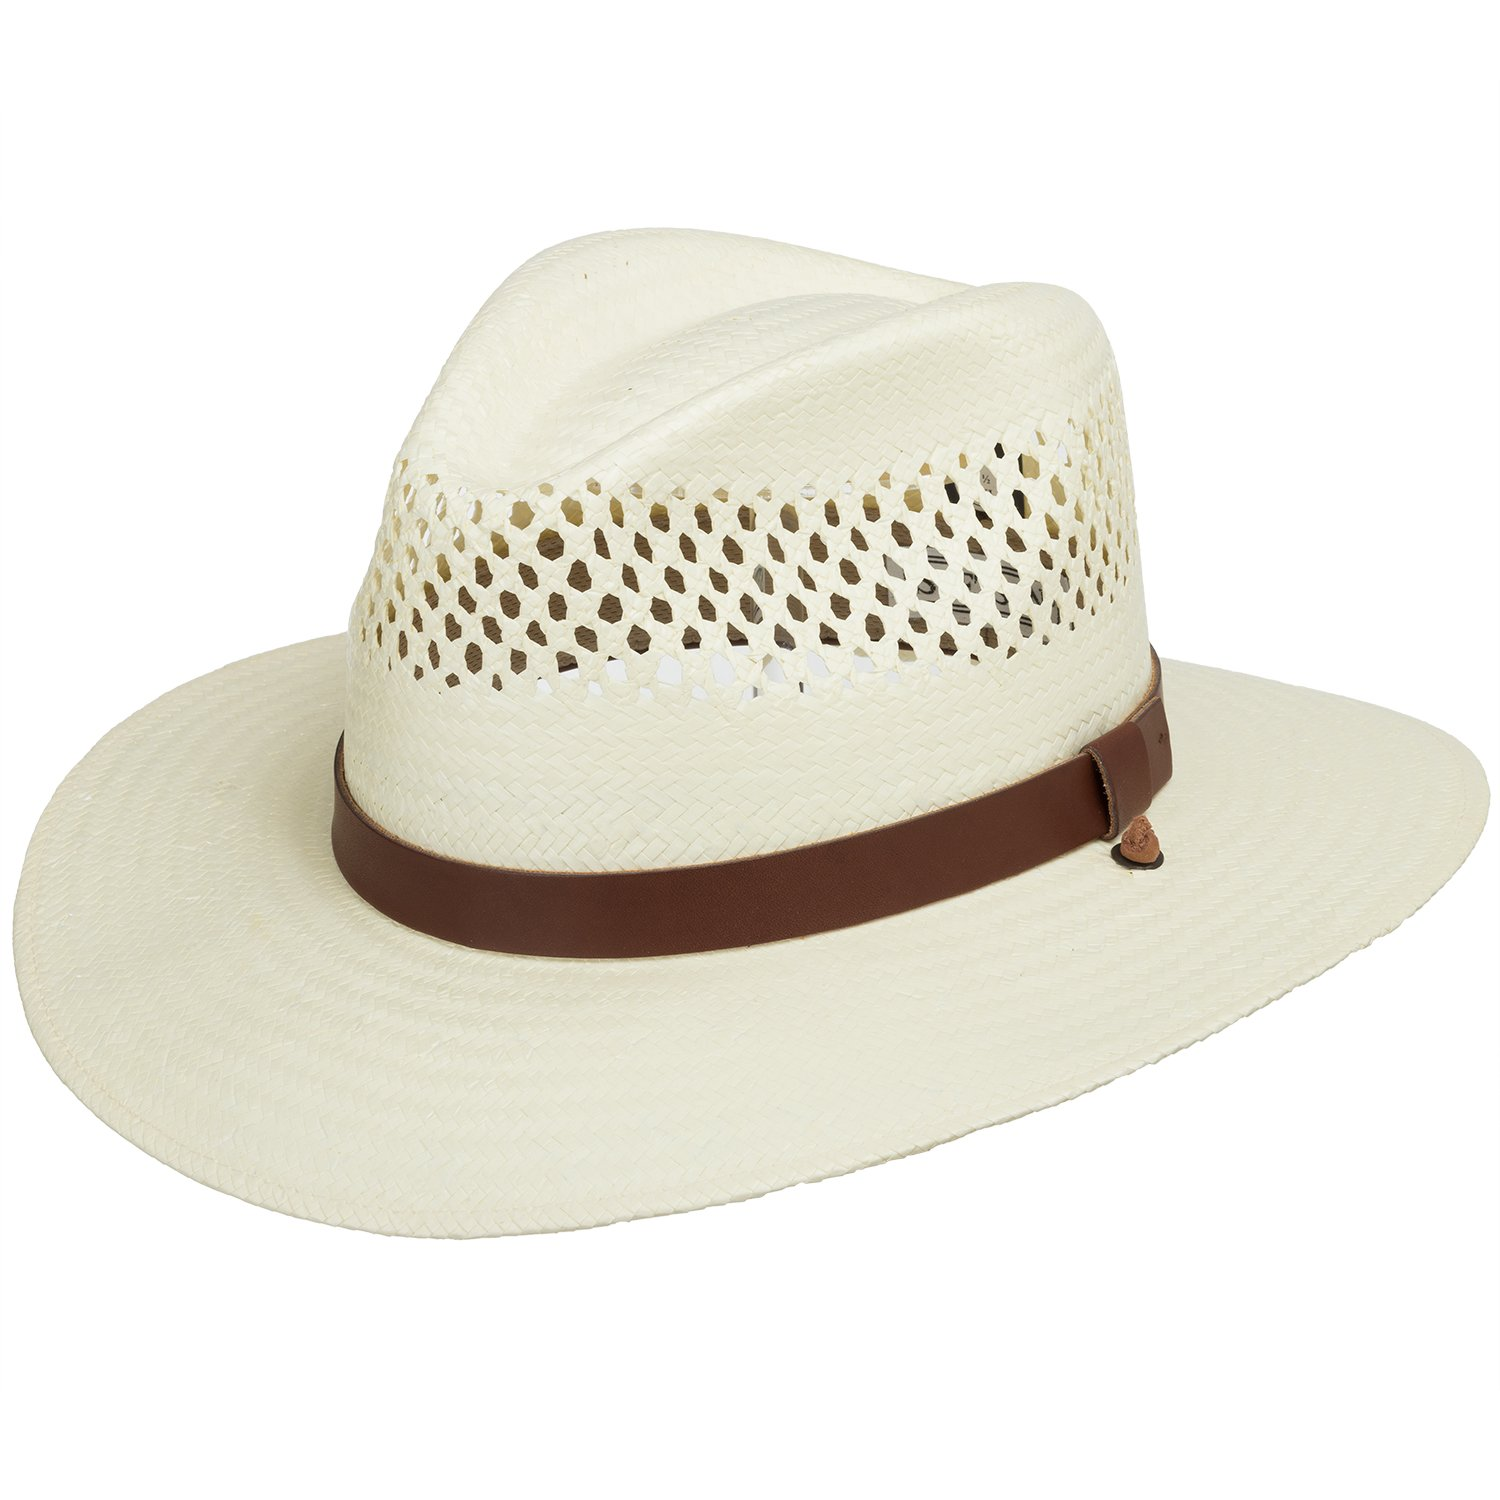 Stetson Digger Vented Straw Outback Hat ULTRAFINO 123004